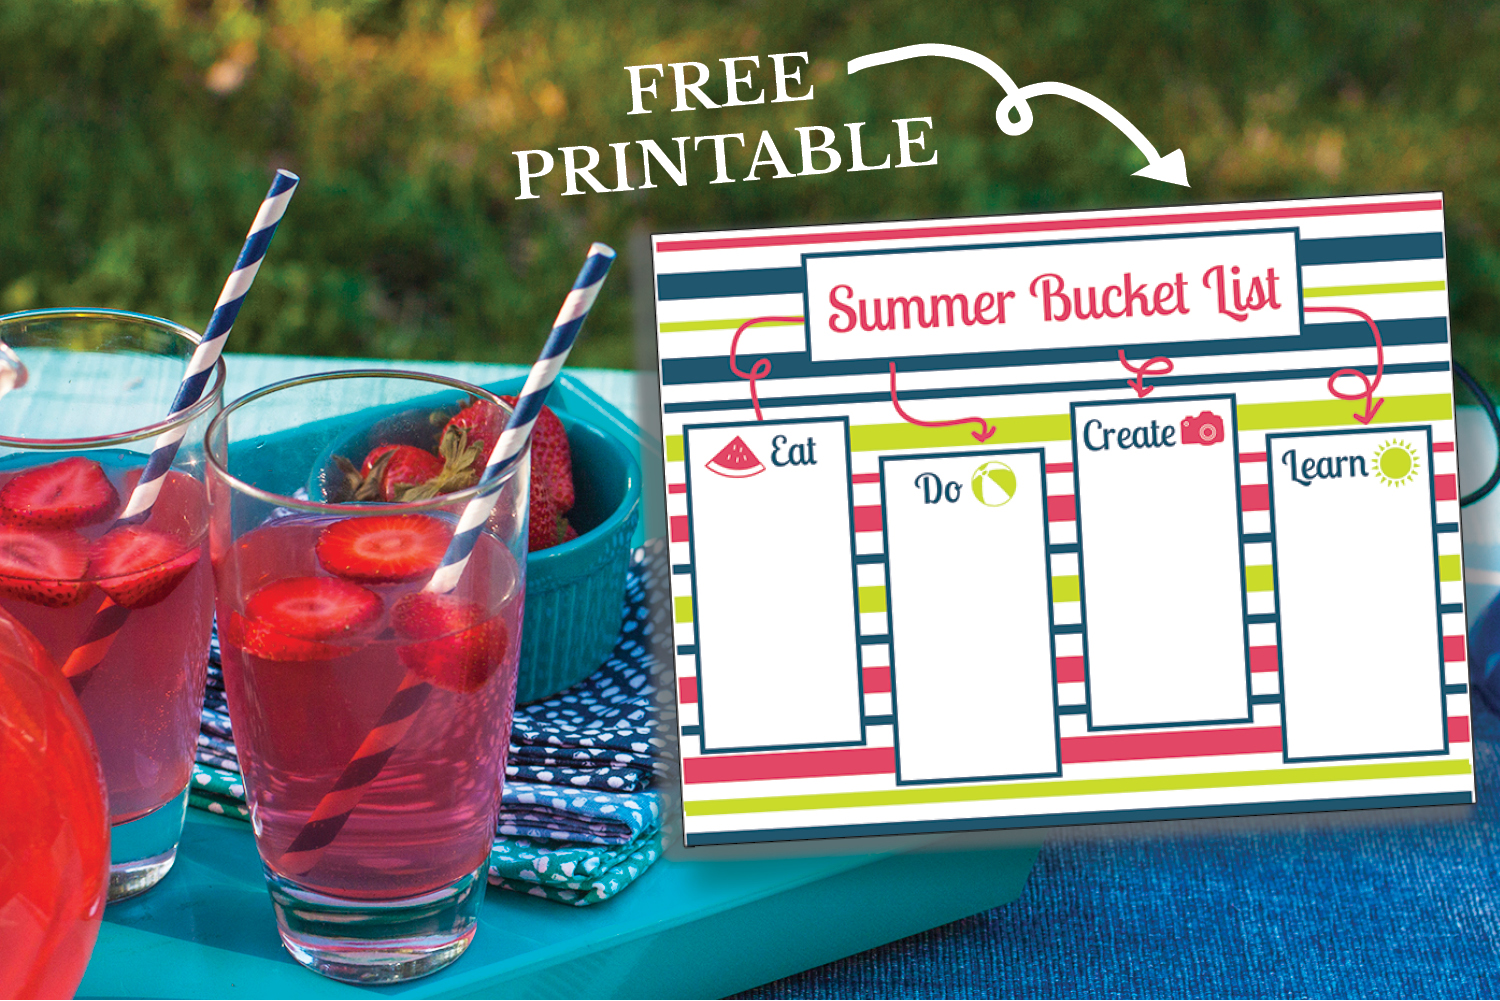 free-printable-summer-bucket-list